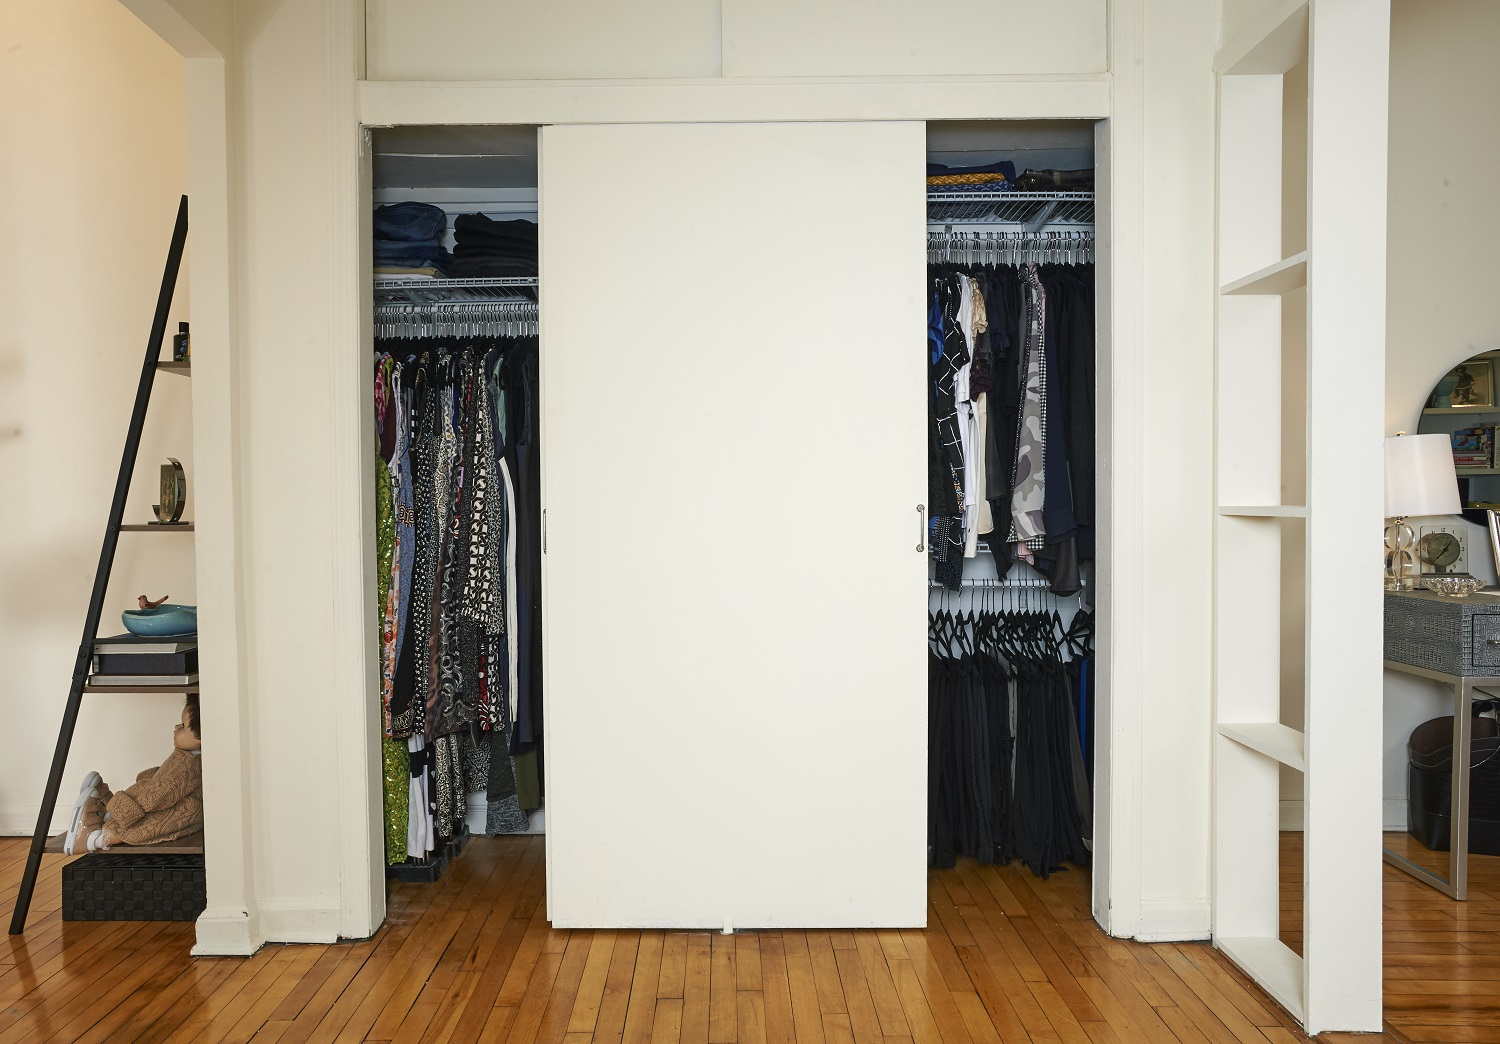 A New York City Closet Makeover with ClosetMaid and Barbara Reich